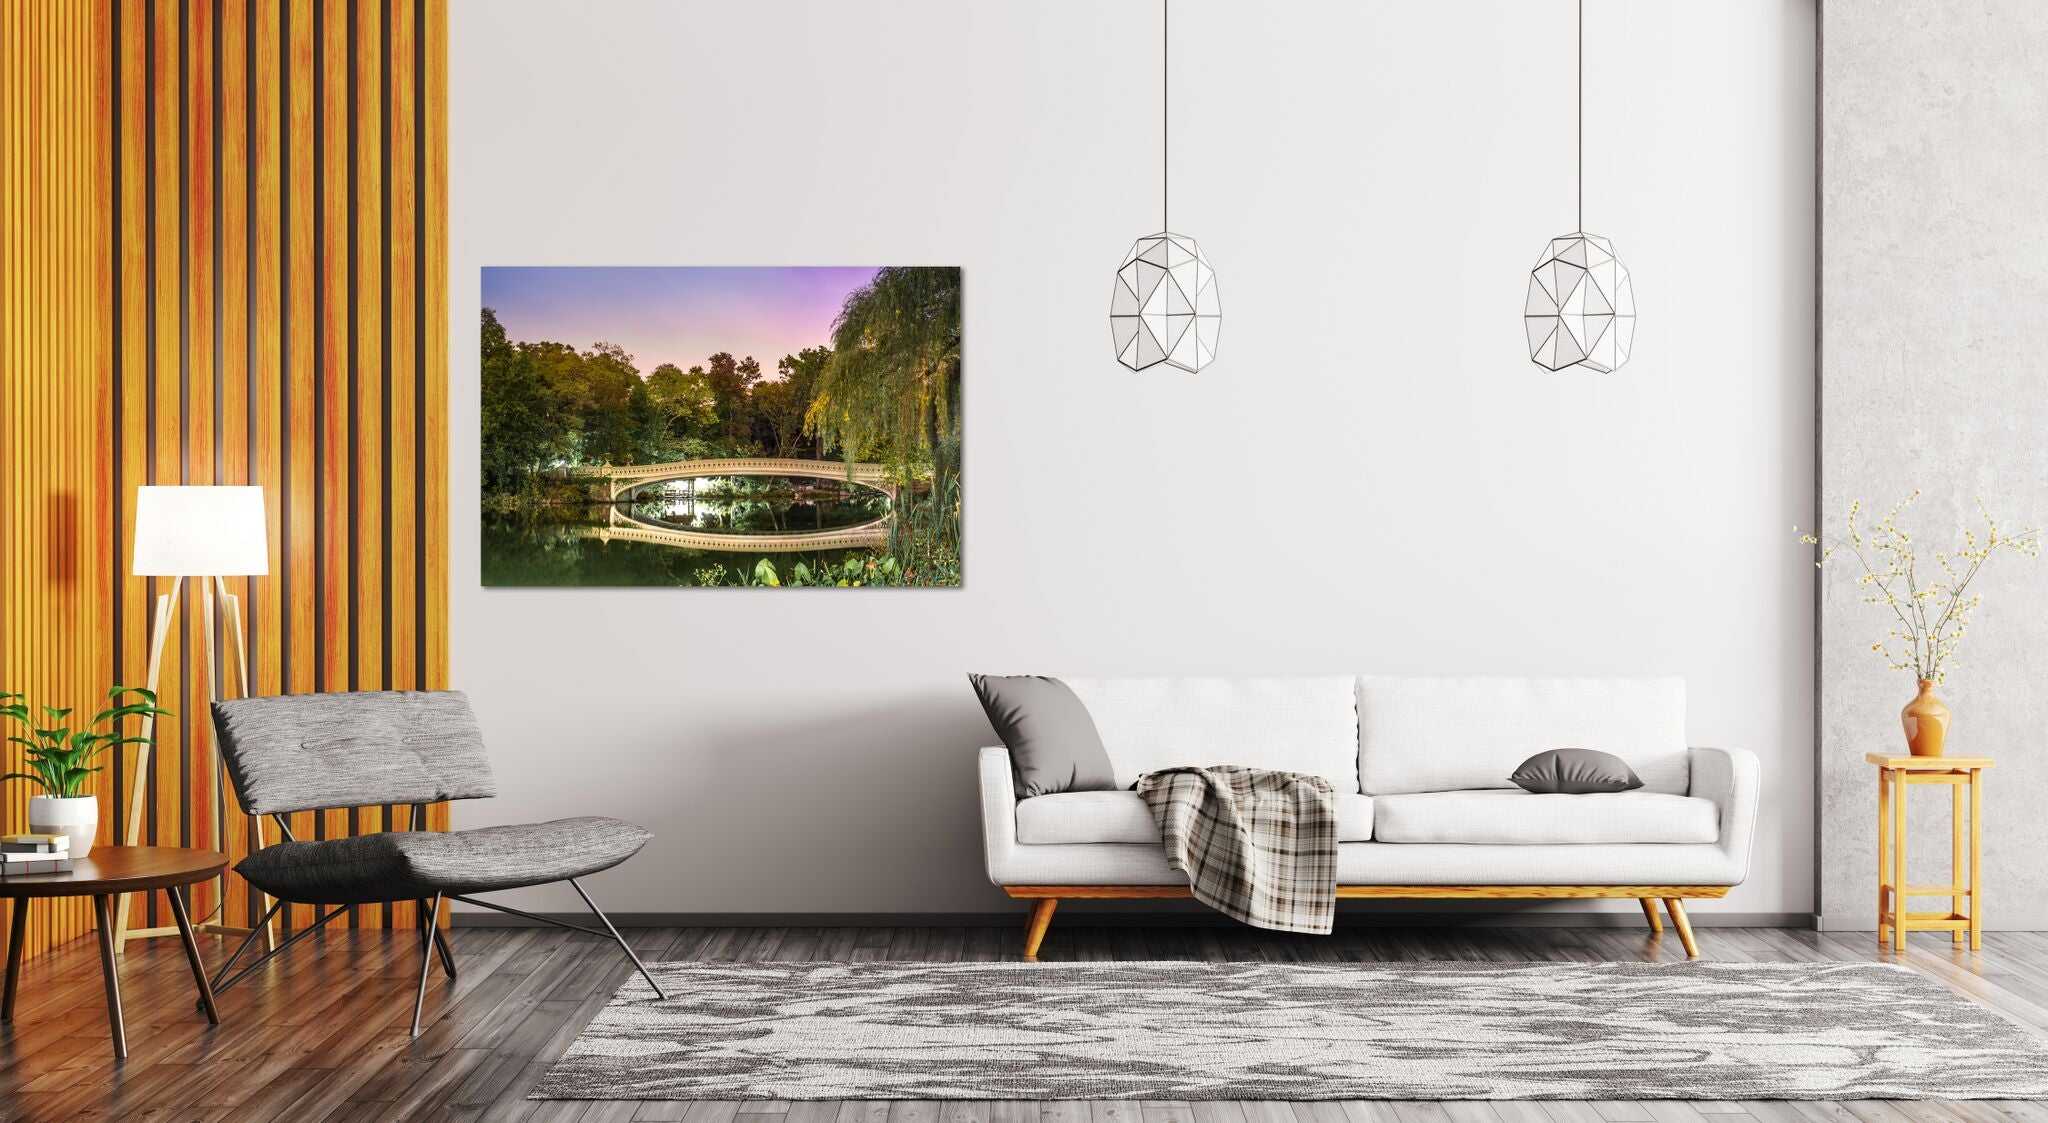 Bow Bridge Central Park Sunset Manhattan New York City Canvas Print Metal Art Cityscape Landmark Bedroom Livingroom wall art decor home post